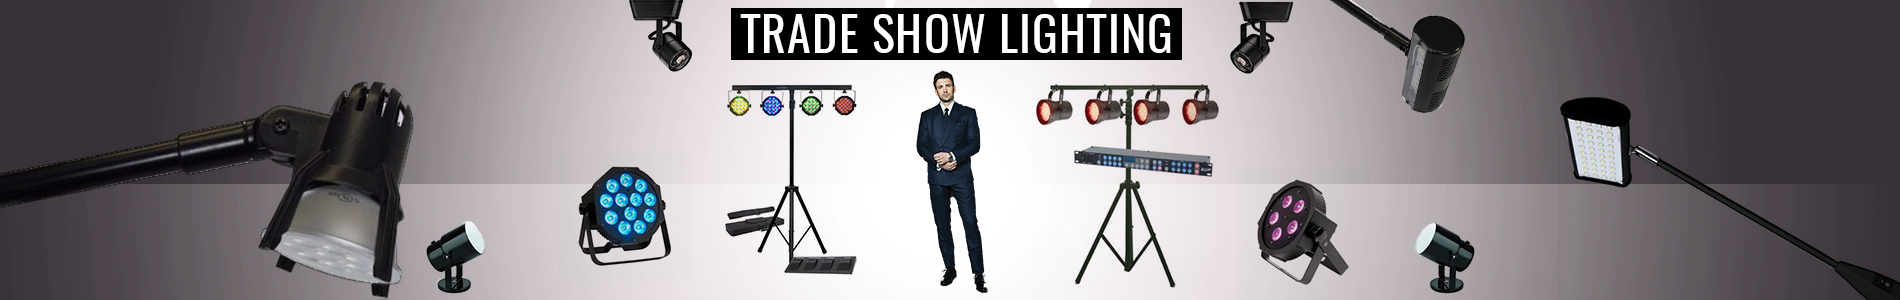 Led Trade Show Display Lights Exhibit Lighting Fixtures